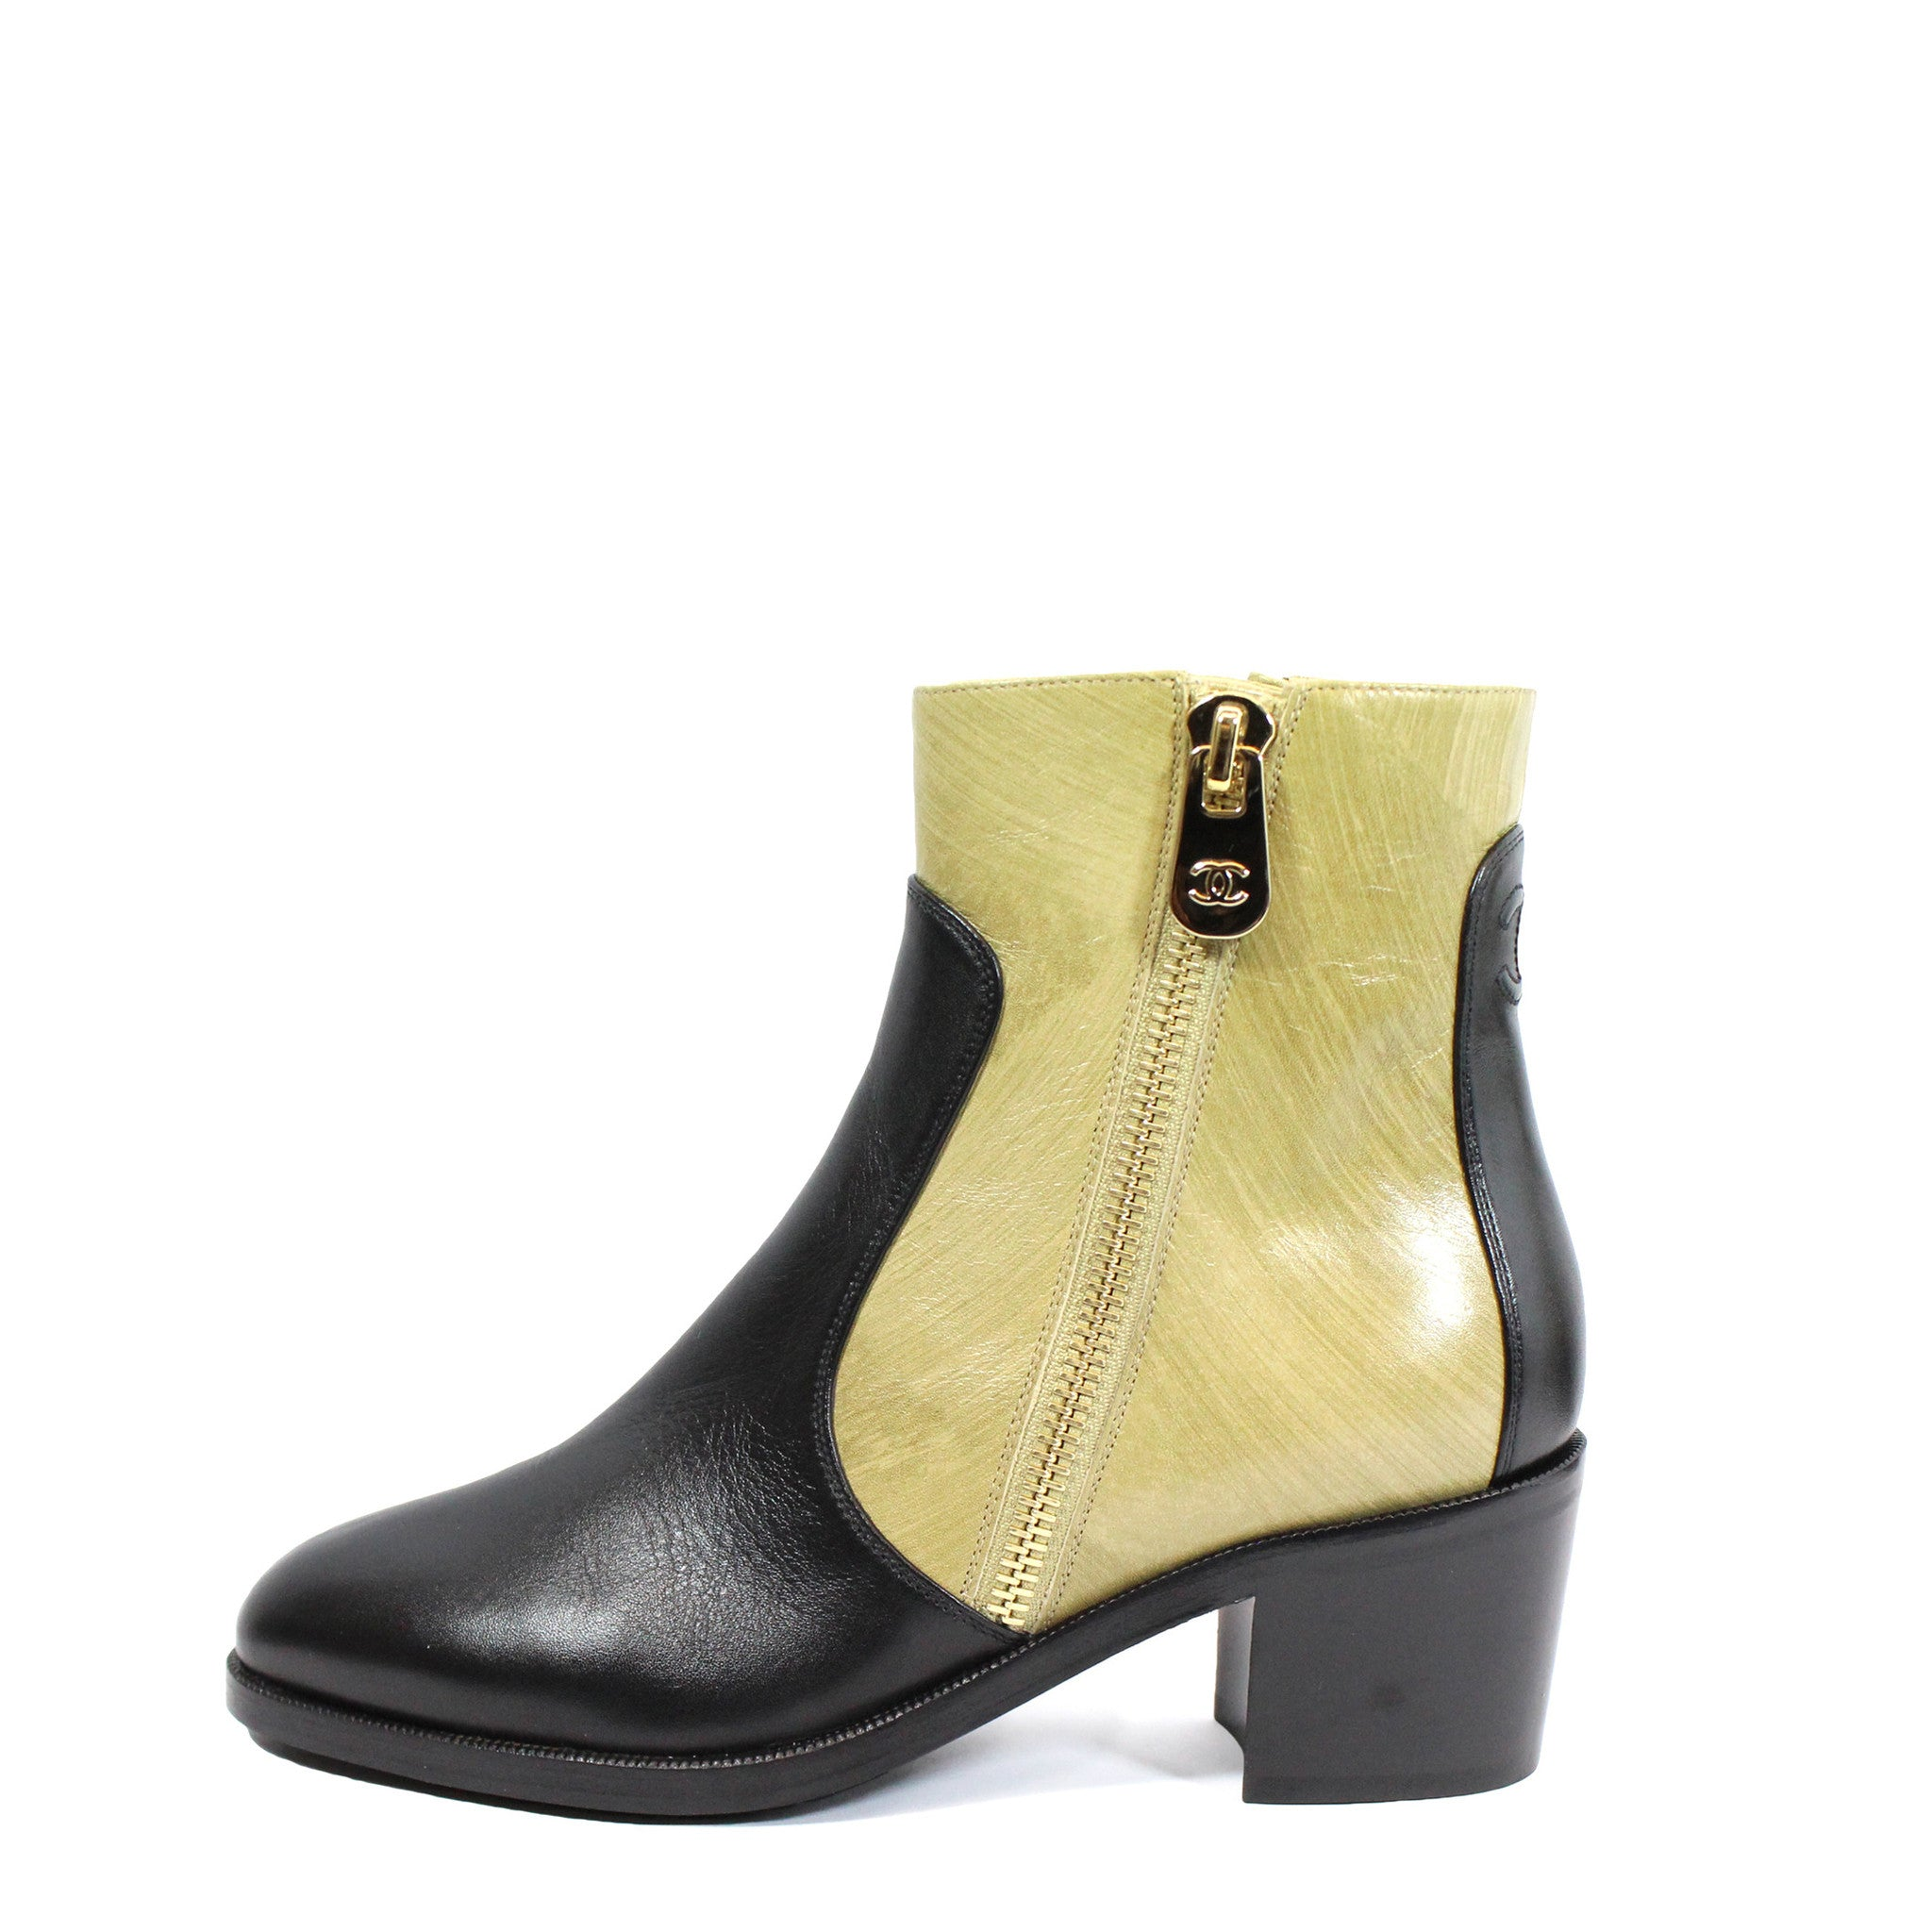 Chanel Two-tone Short Calfskin Boots (Size 38) - Encore Consignment - 10